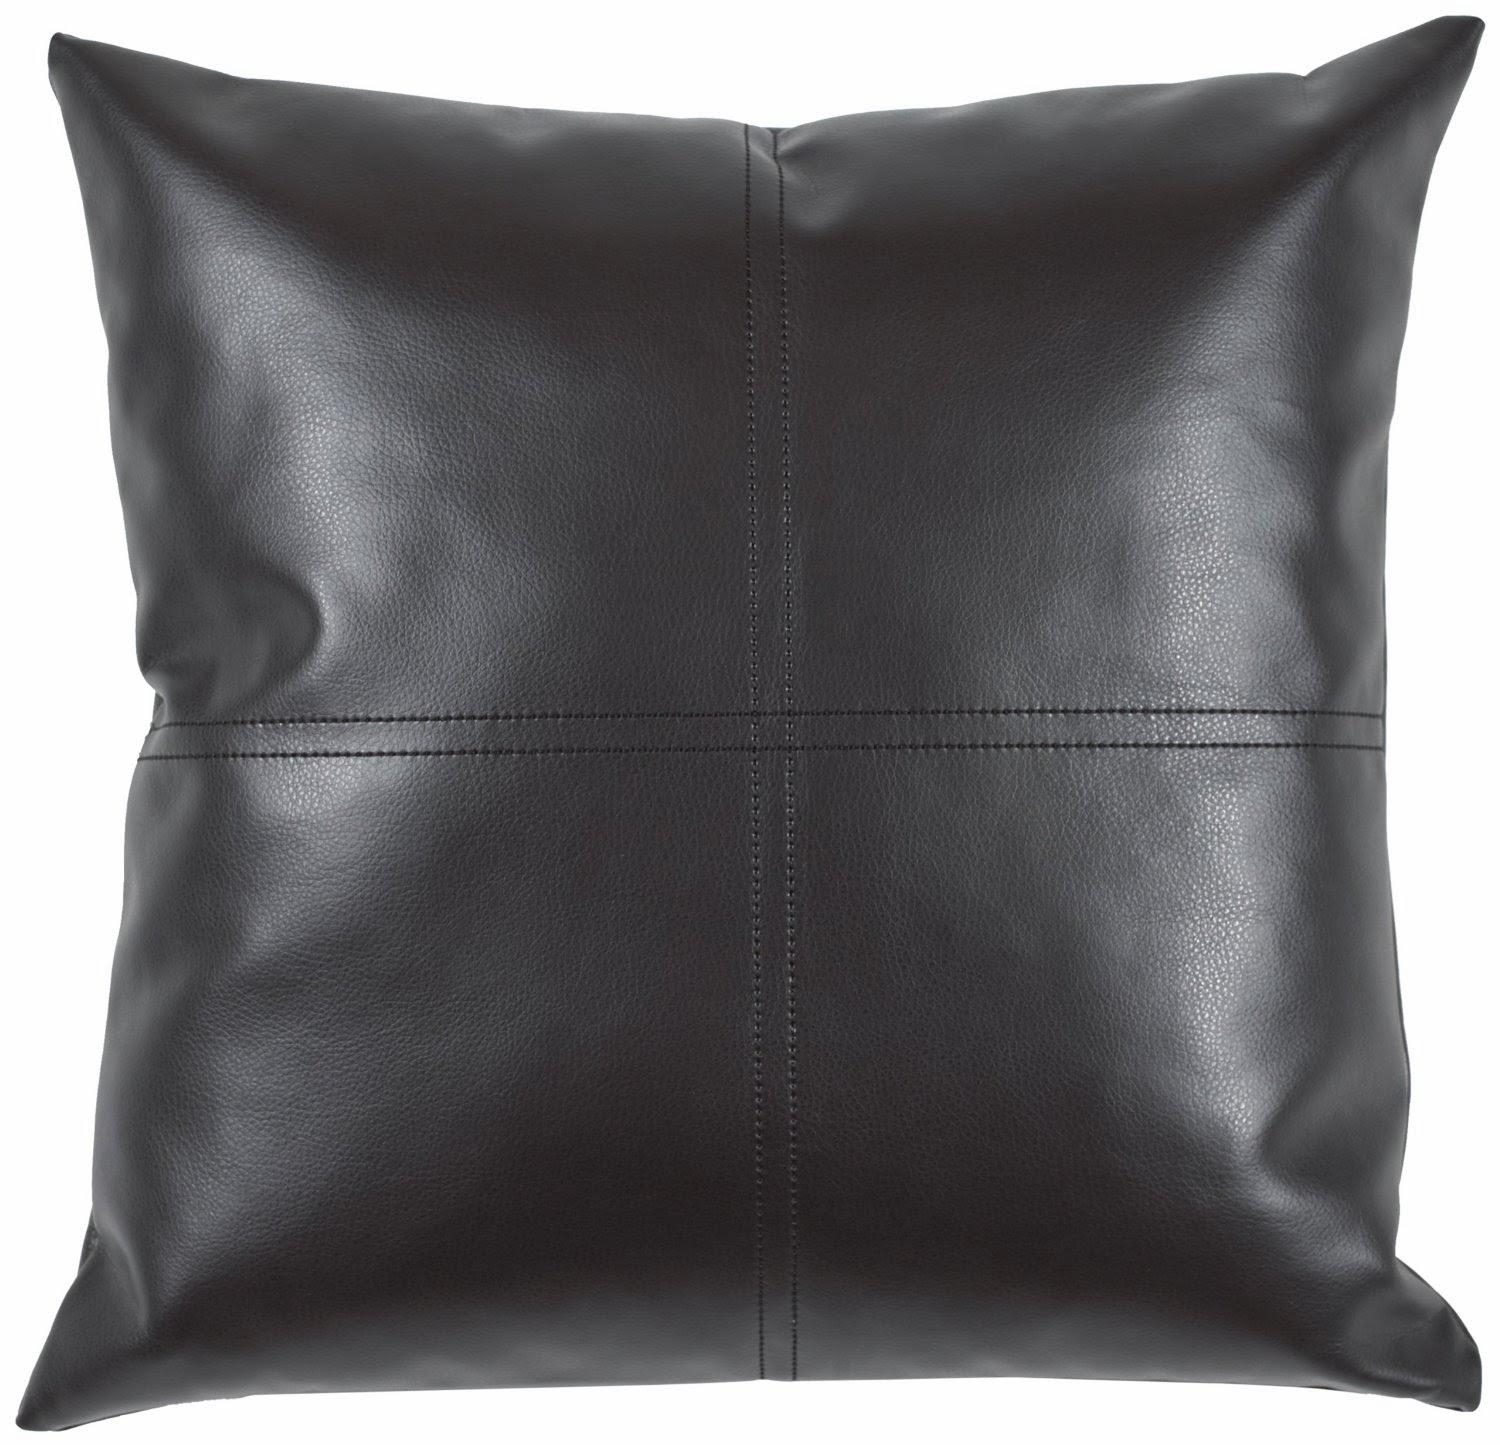 Sofas Center : Sofa Cushion Cover Covers Haha Pillow Headrest In Sofa Cushion Covers (Image 19 of 20)